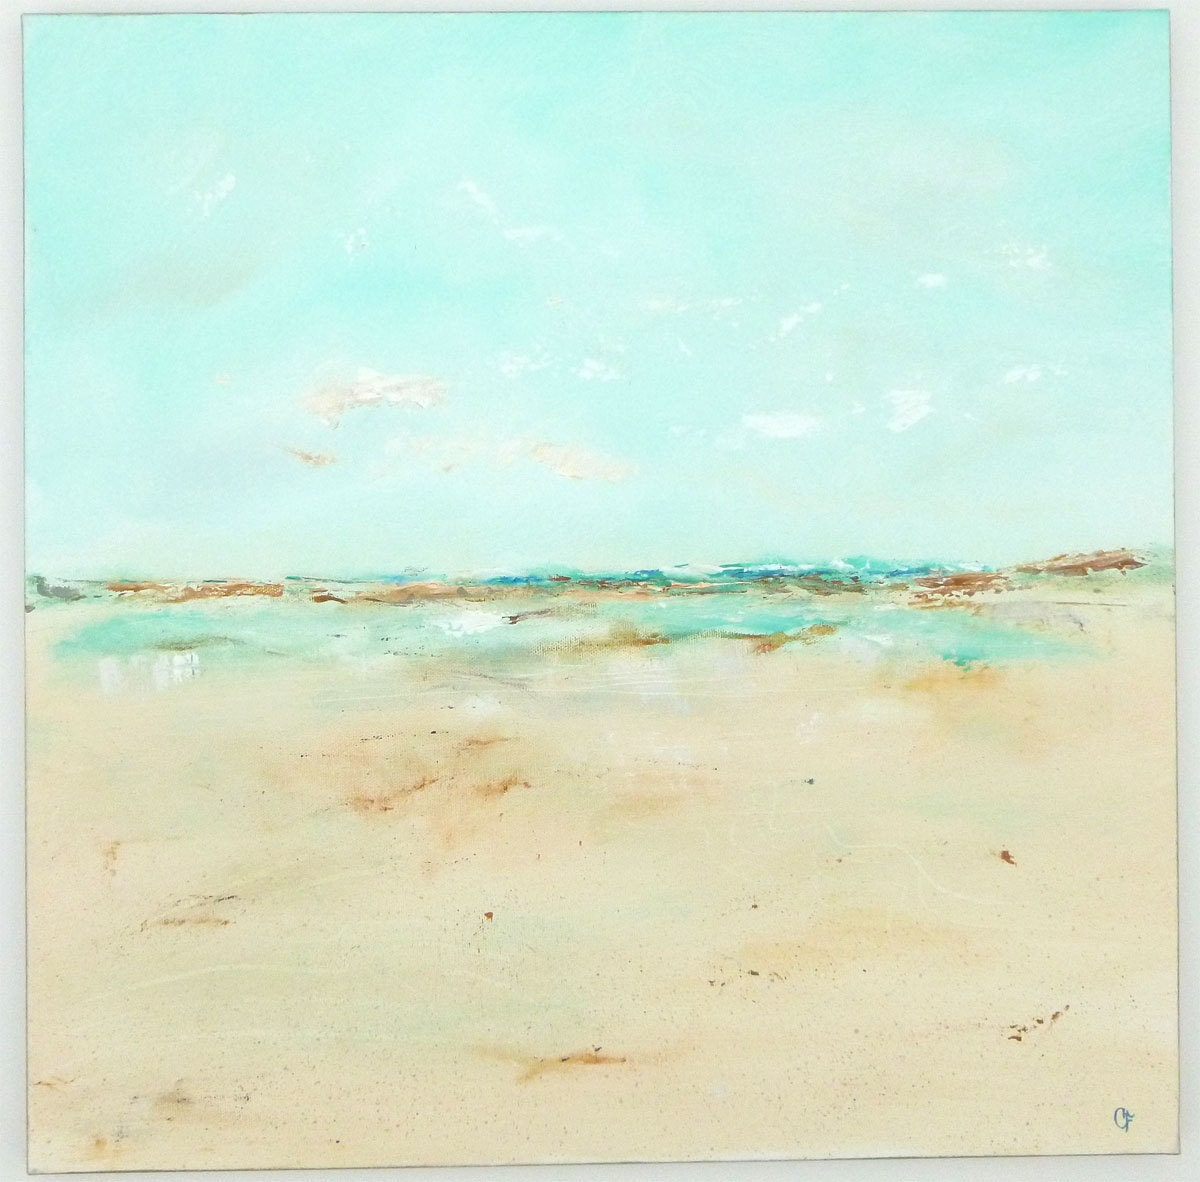 Complimentary Color To Pink Abstract Beach Painting Aqua Turquoise Beach Original